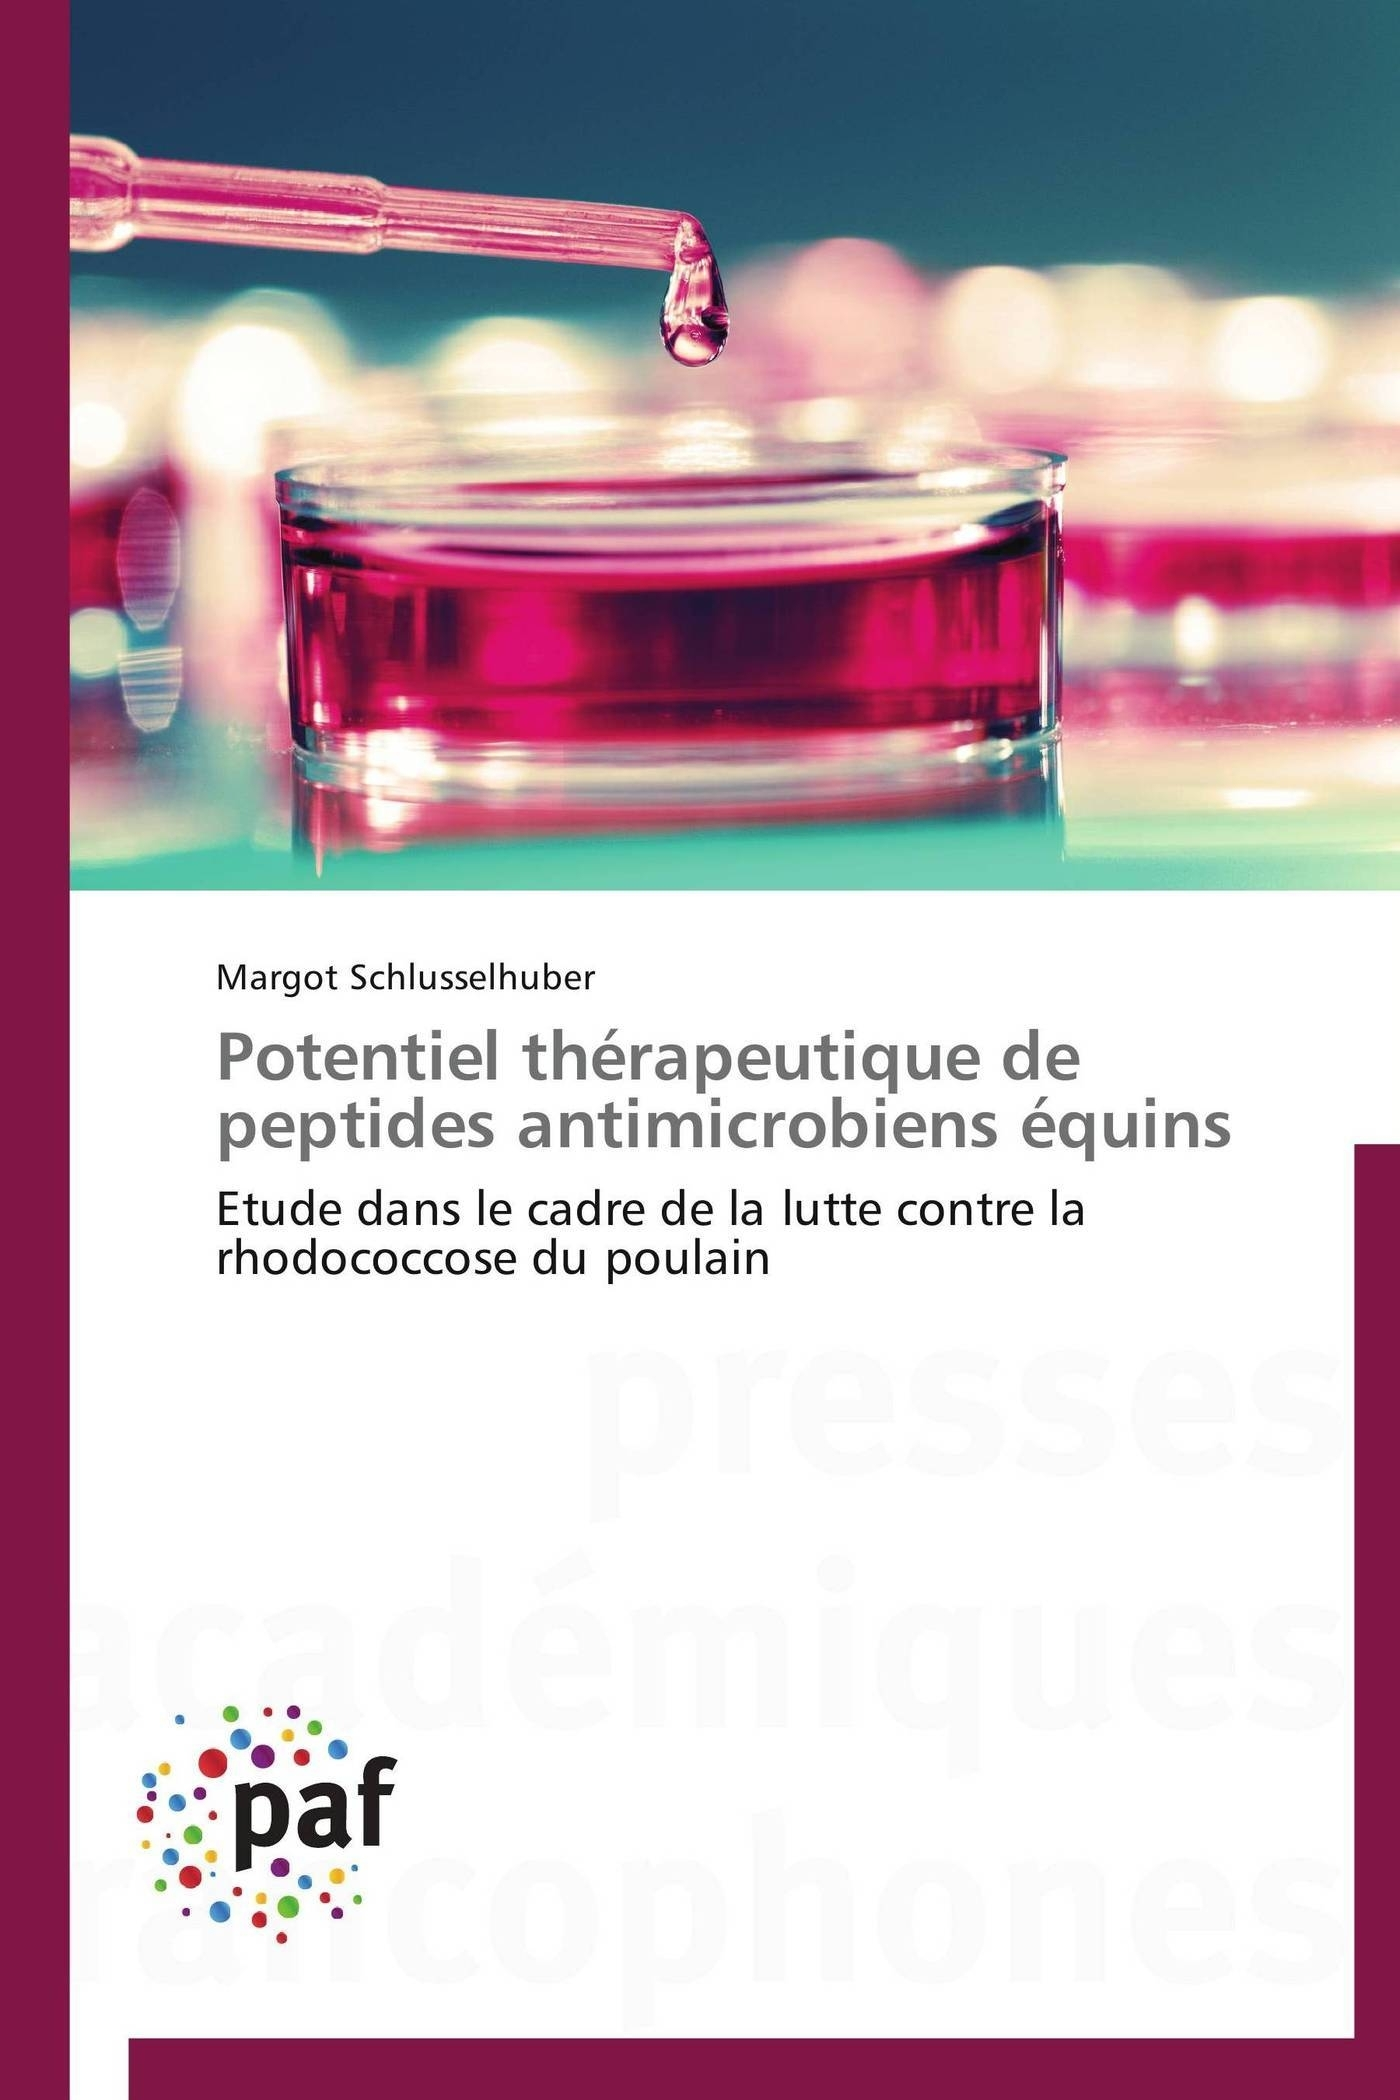 POTENTIEL THERAPEUTIQUE DE PEPTIDES ANTIMICROBIENS EQUINS